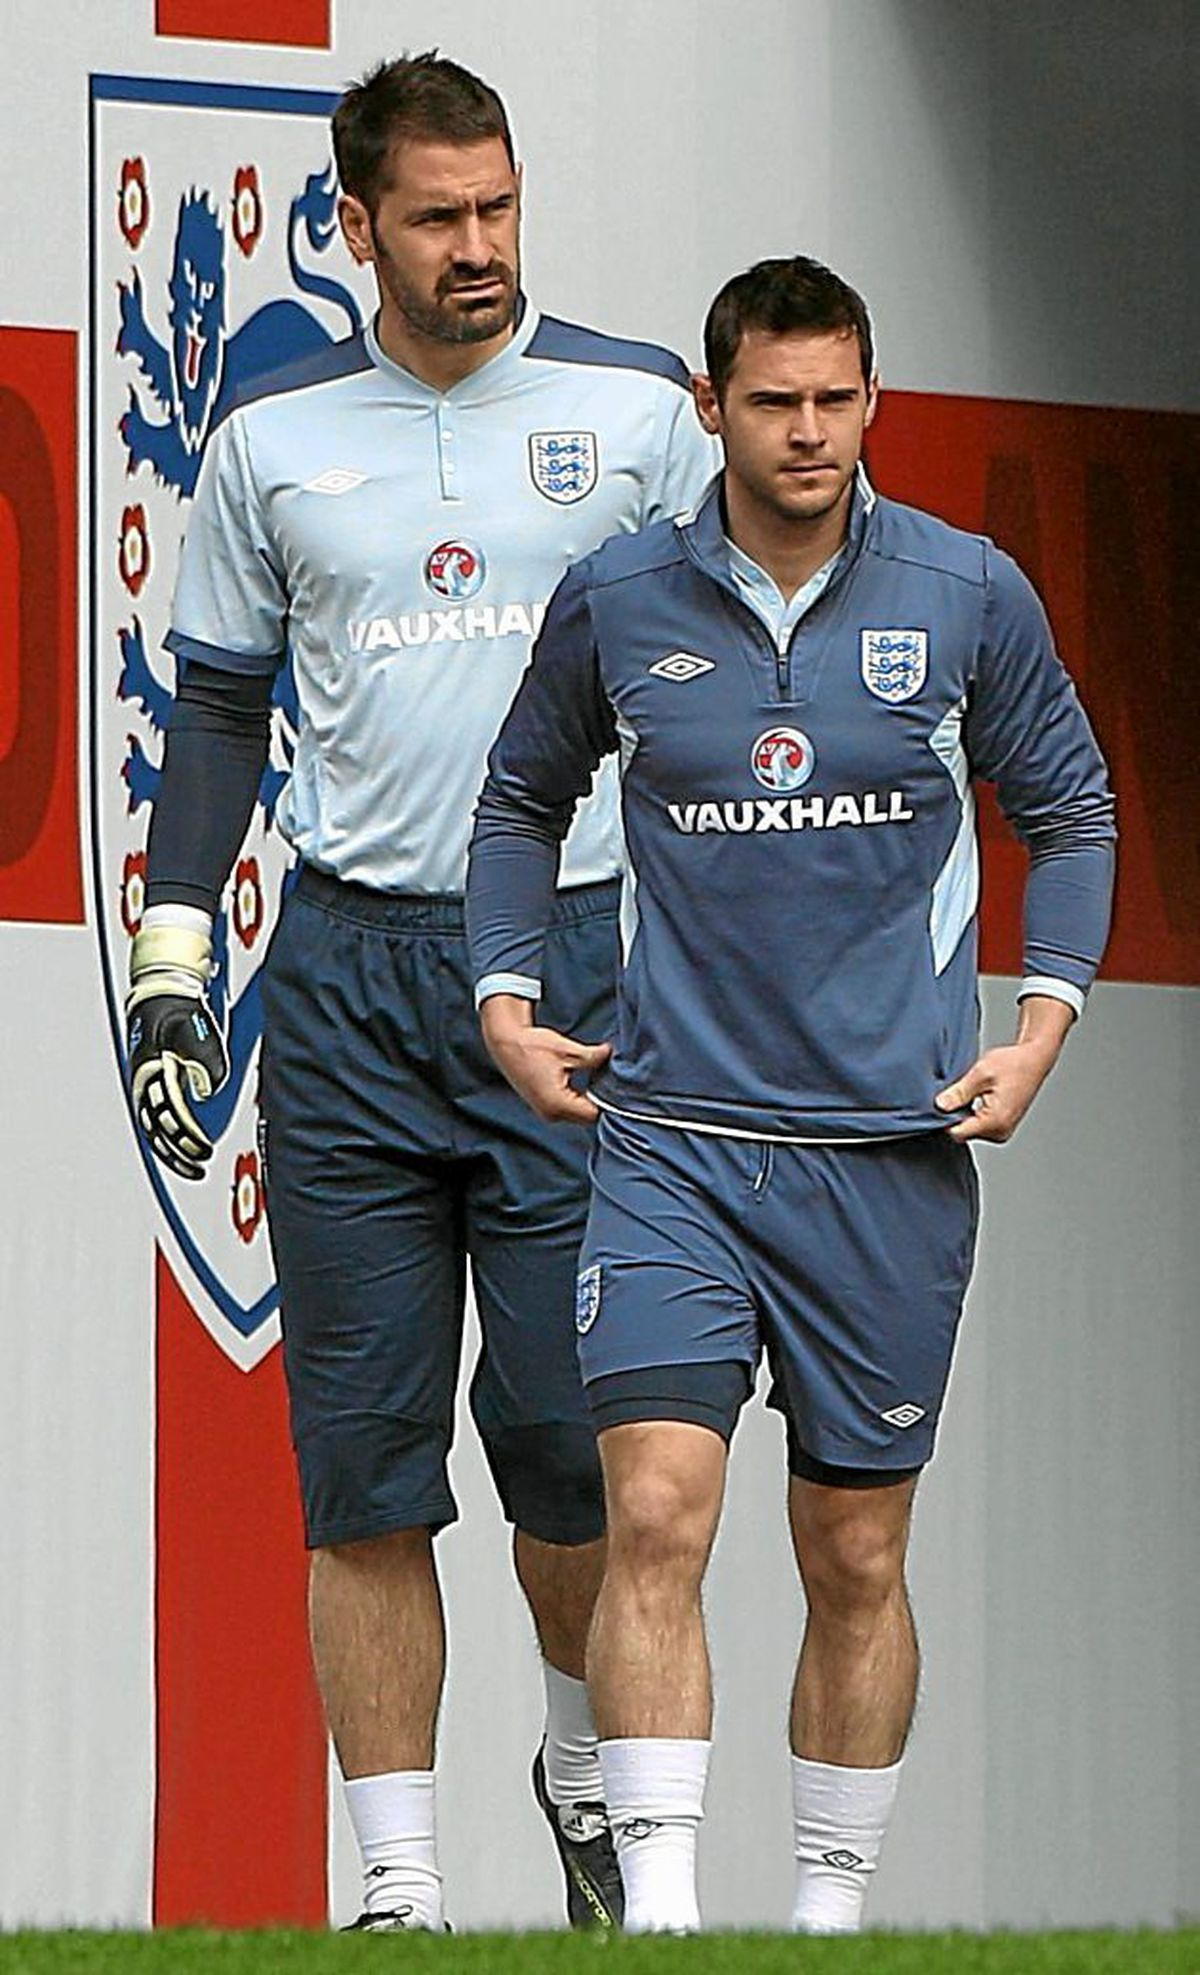 England goalkeeper Scott Carson (left) and Matt Jarvis (right) walk out to a training session at Wembley Stadium,